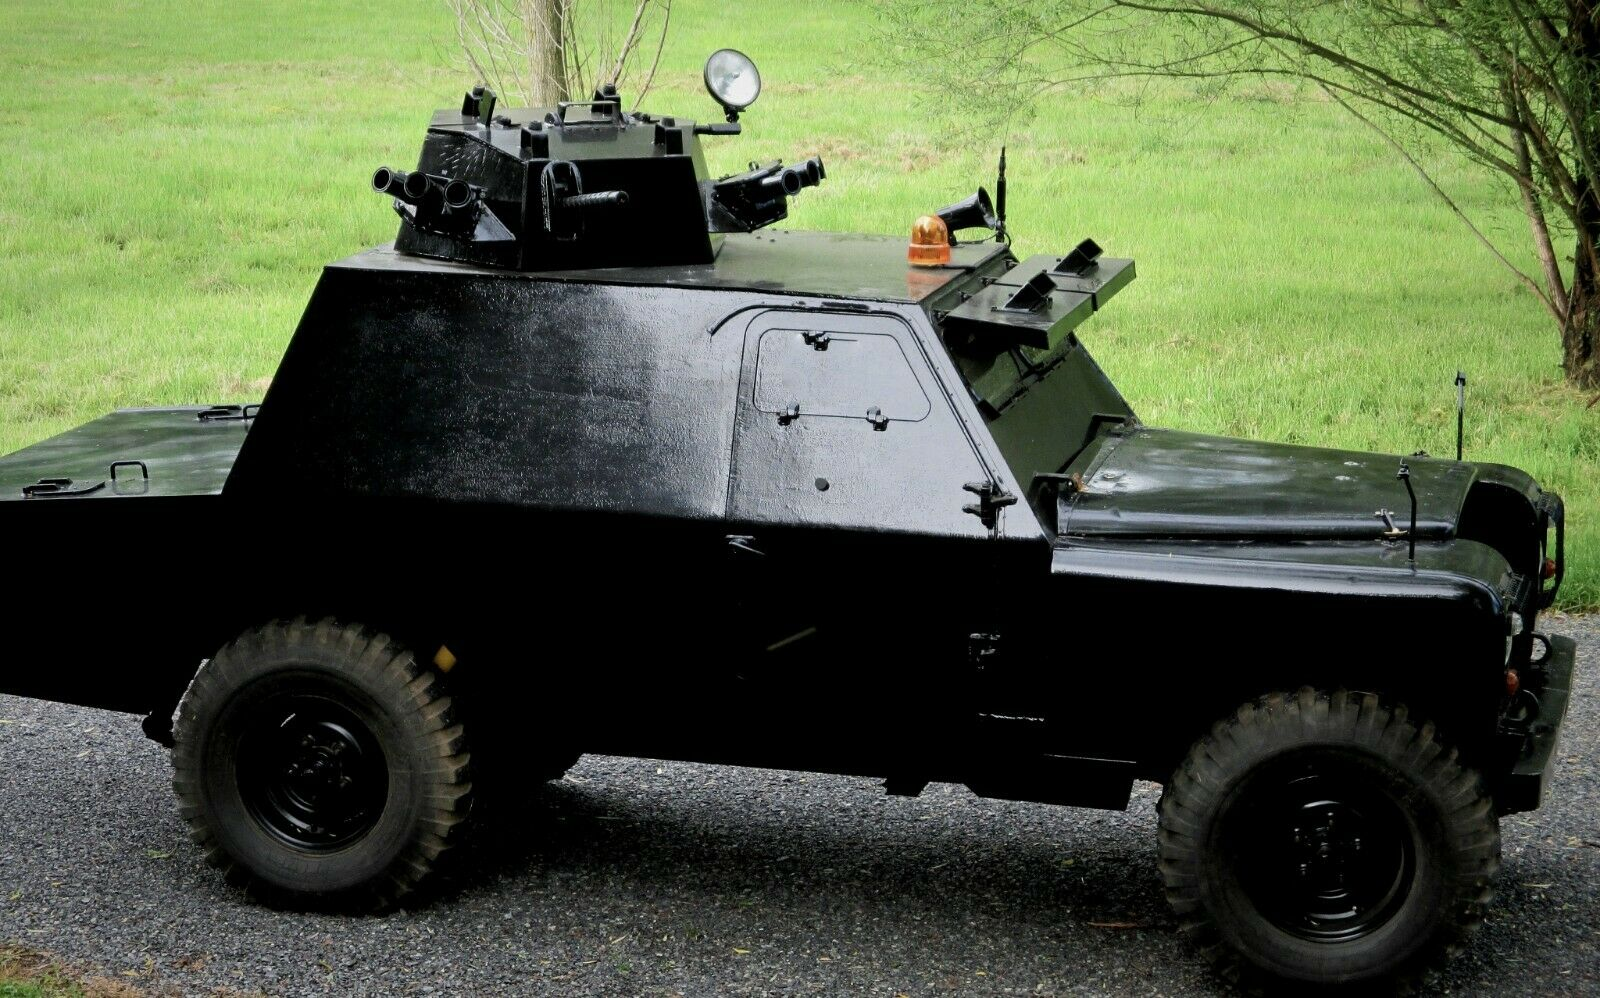 Neighborhood Trouble Stopper: This 1973 Shorland Mk3 Armored Patrol Car Probably Has Some Stories